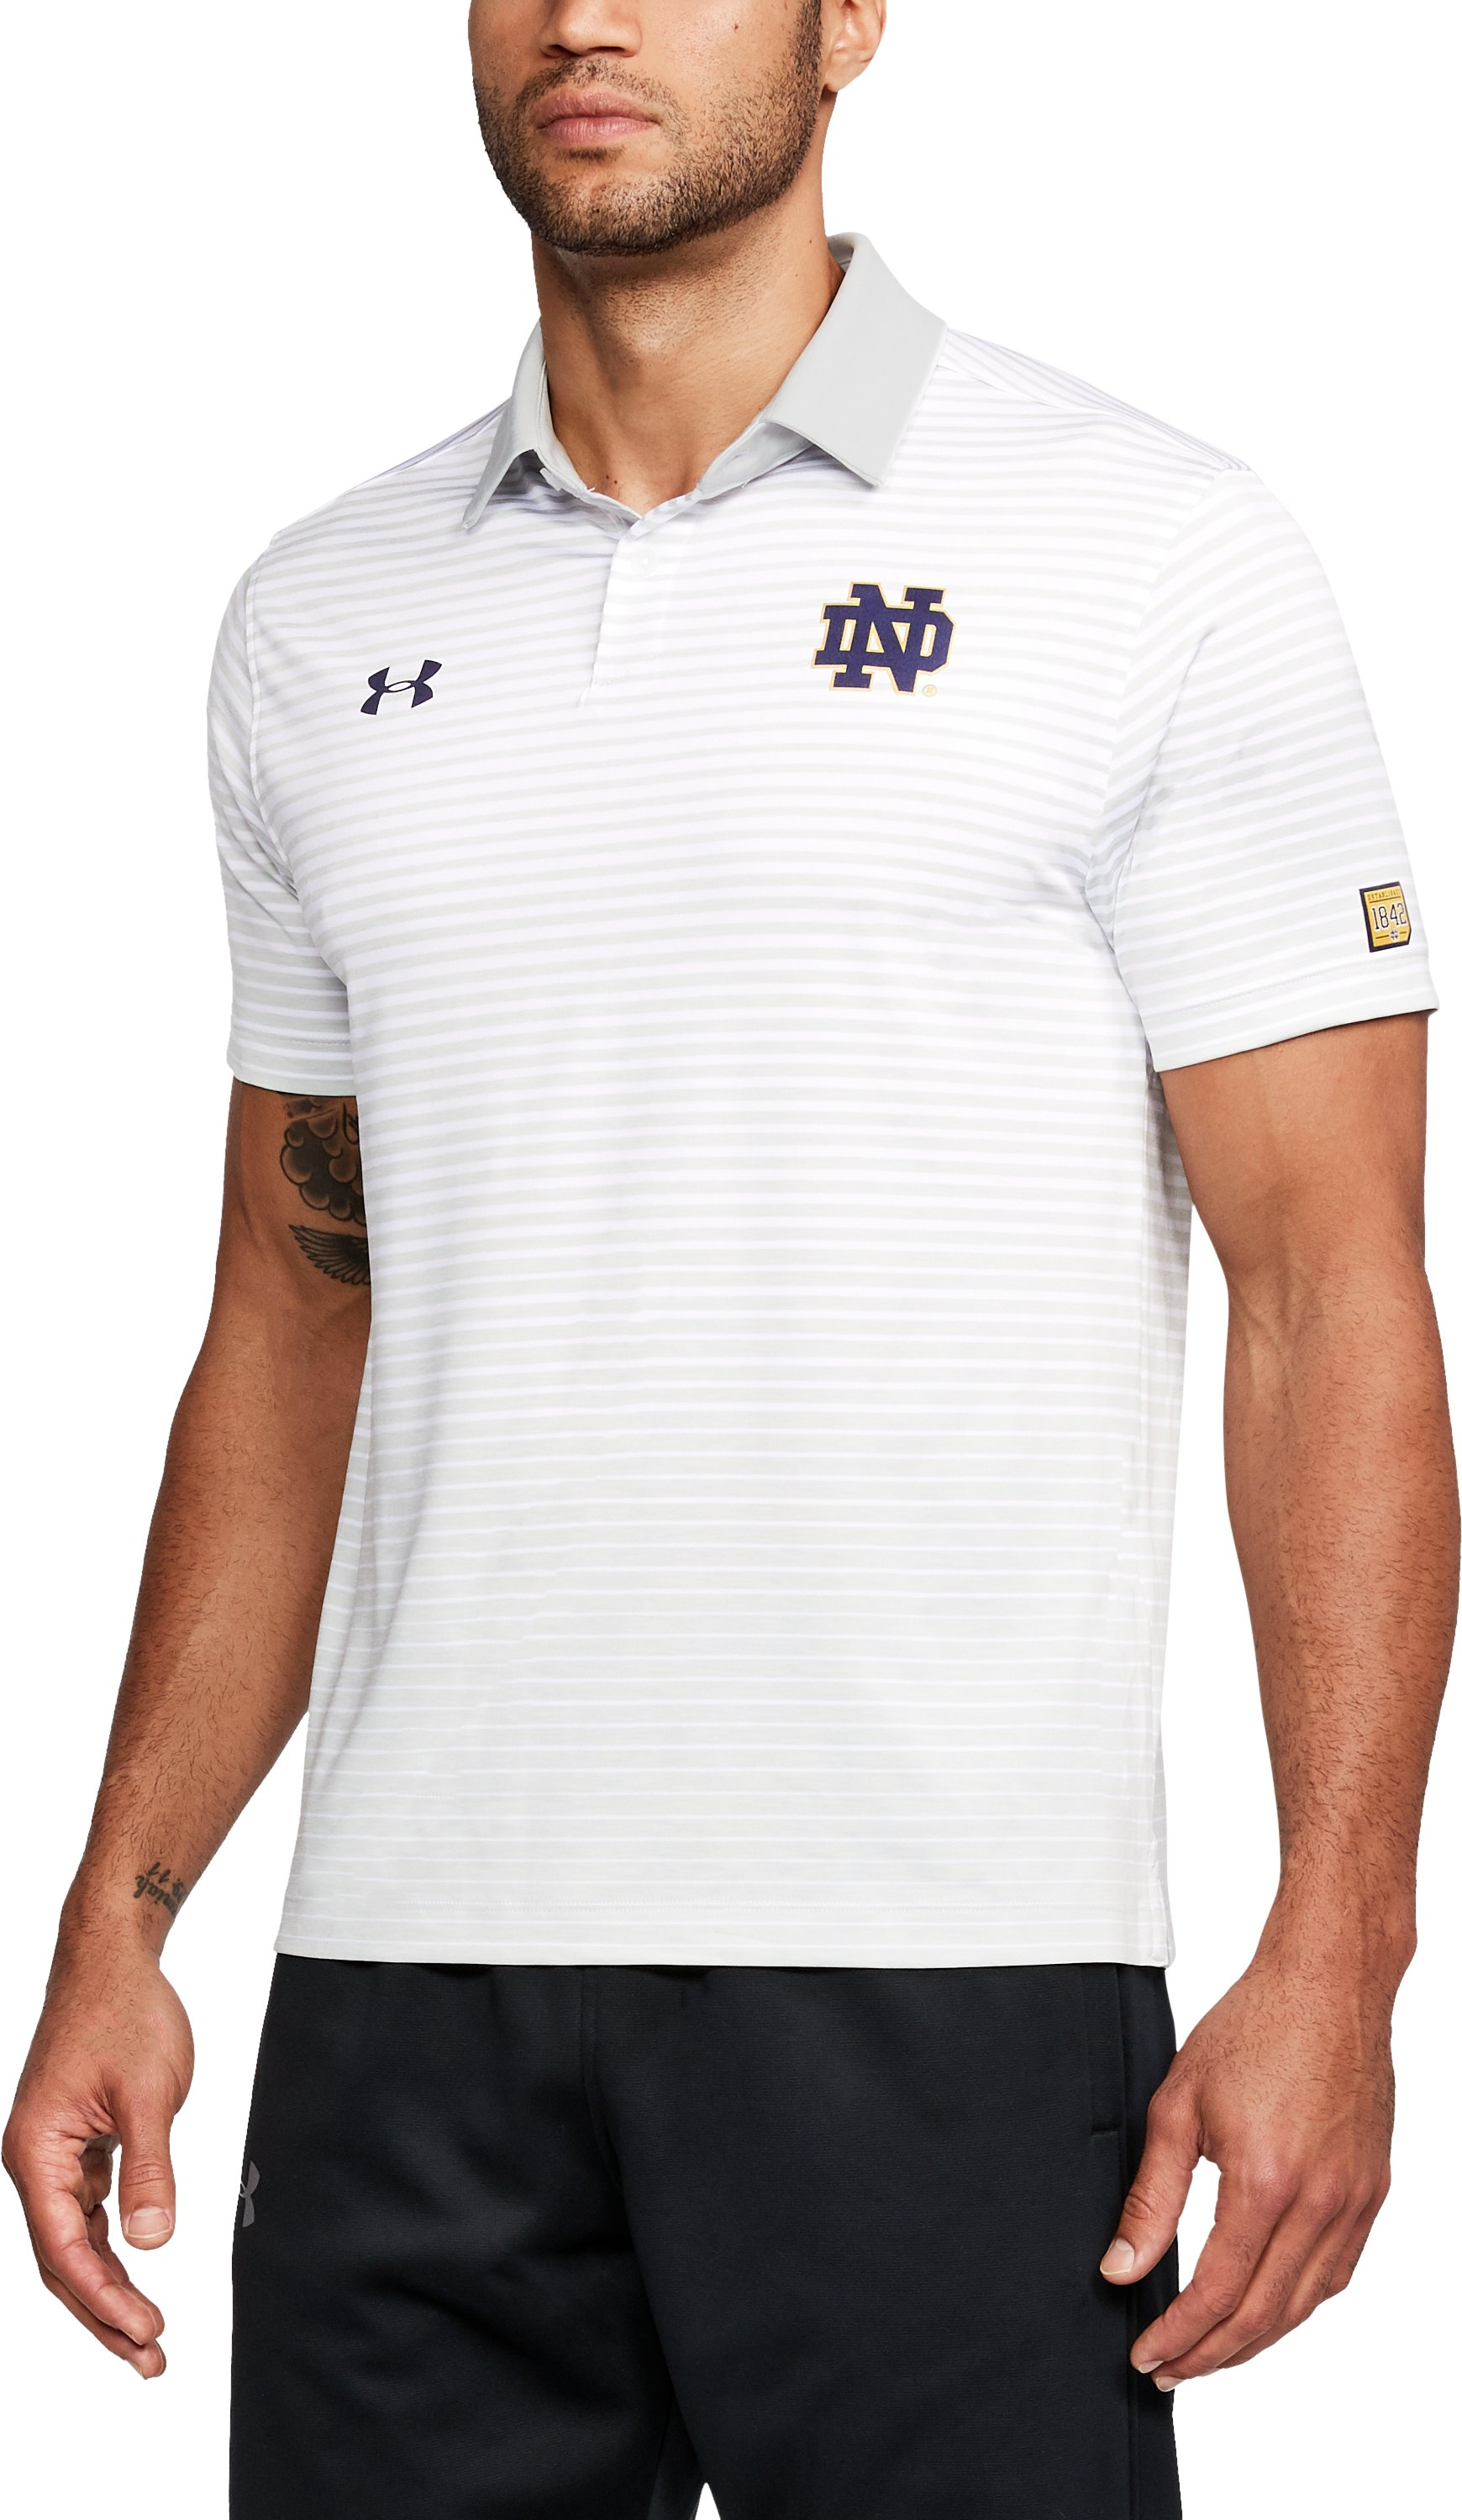 Men's Notre Dame Trajectory Polo, White